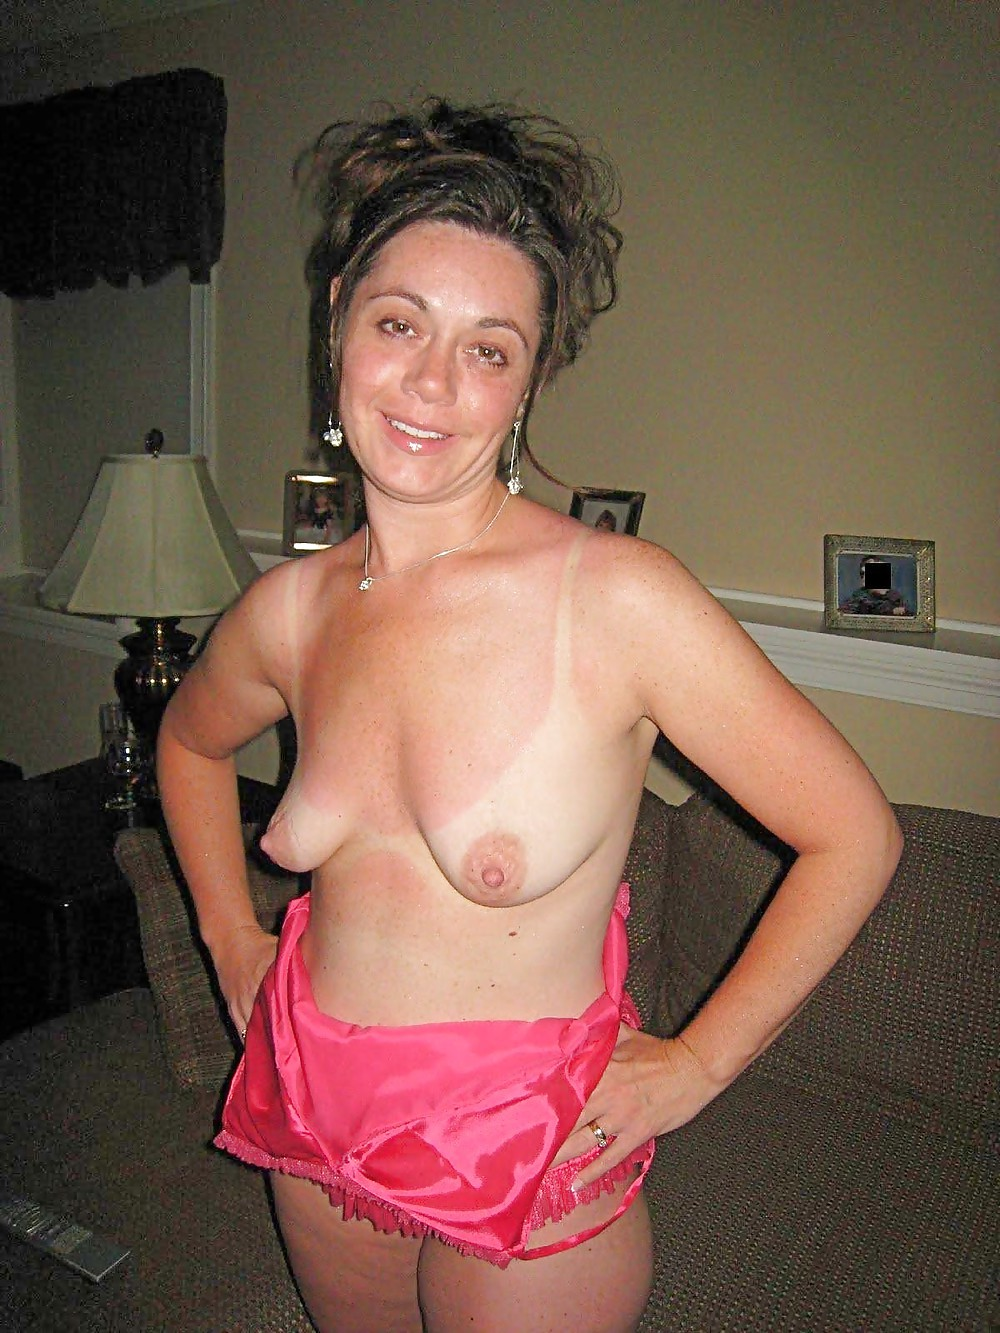 images-of-hot-milfs-with-saggy-boobs